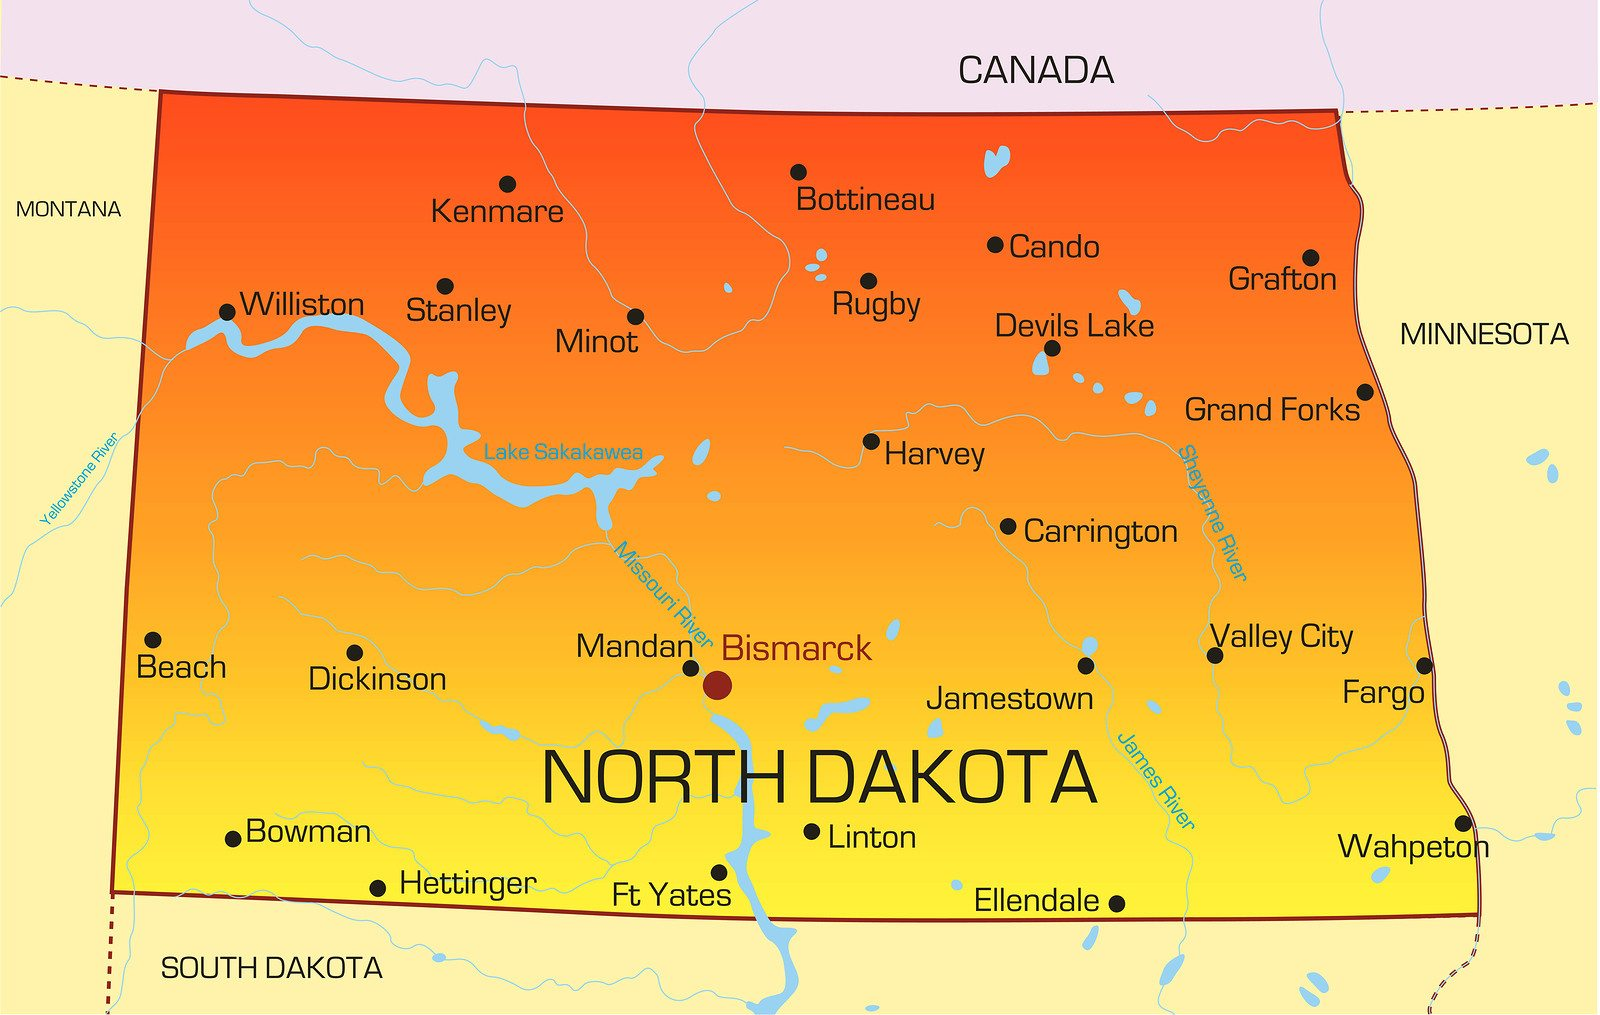 How to start a commercial grow operation in North Dakota